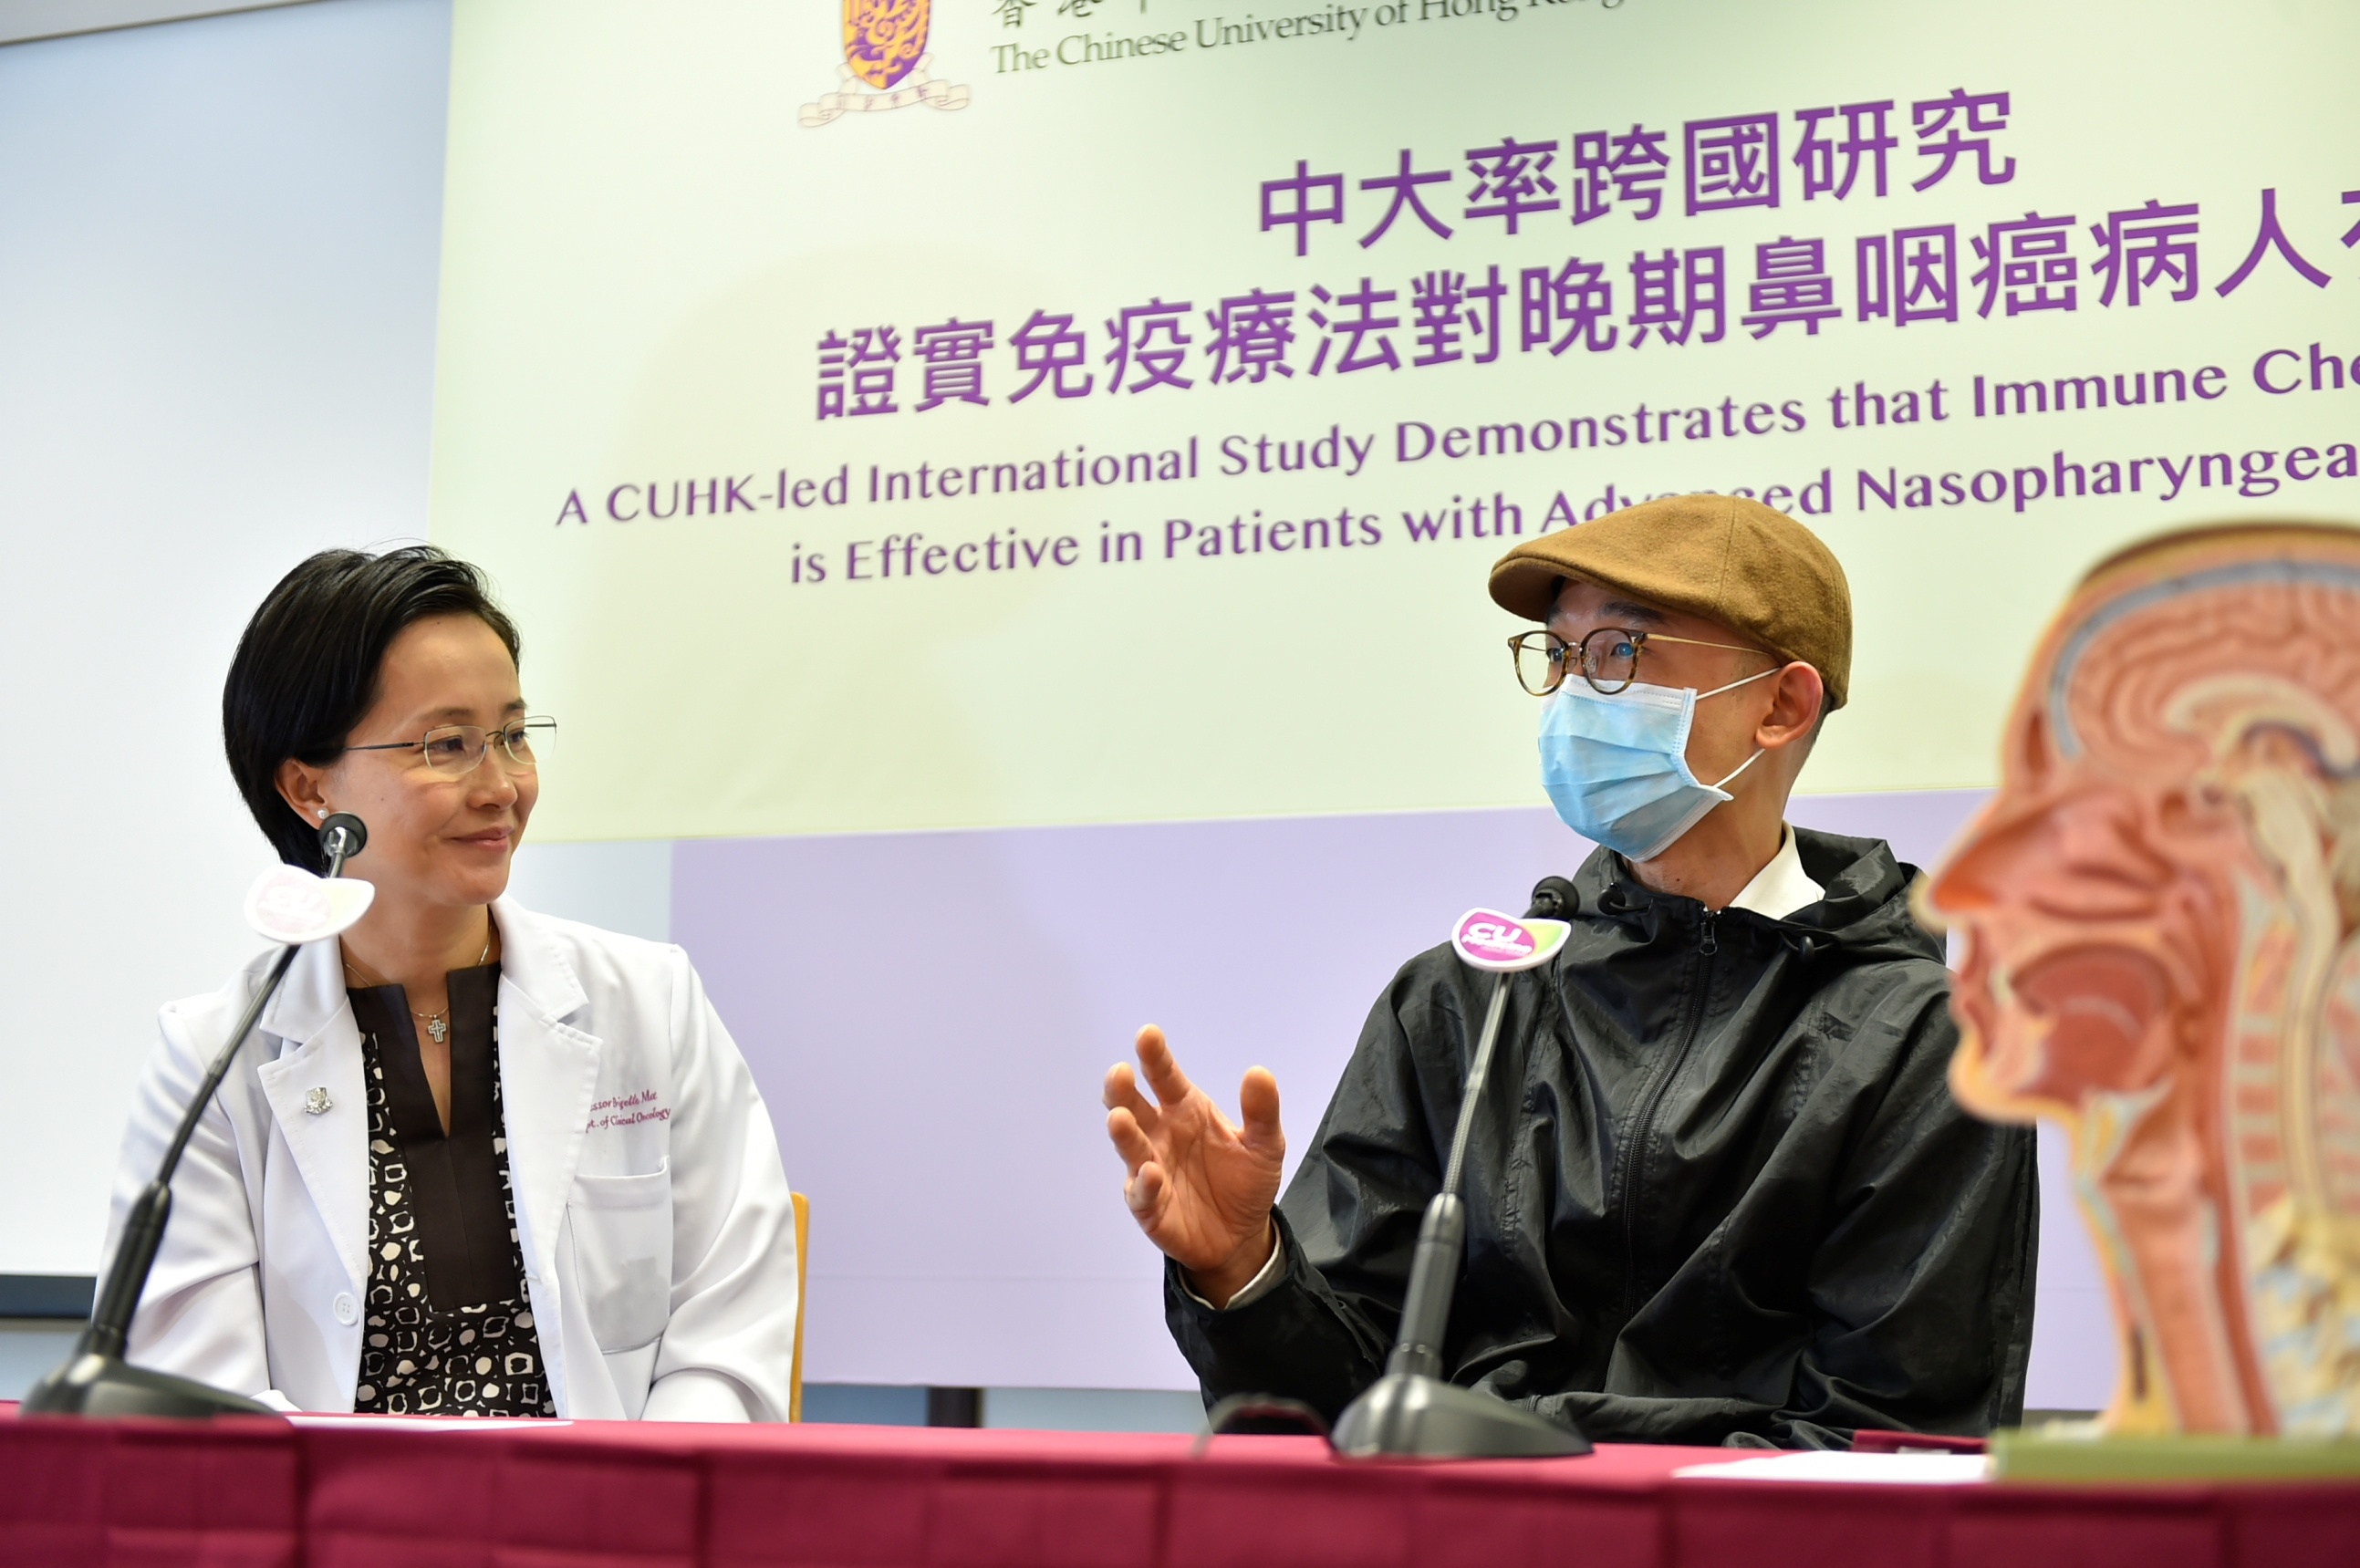 Mr CHAN (pseudo name, right), an NPC patient, states that his physical condition and life quality were not seriously affected during immunotherapy, and there were fewer side effects than chemotherapy.